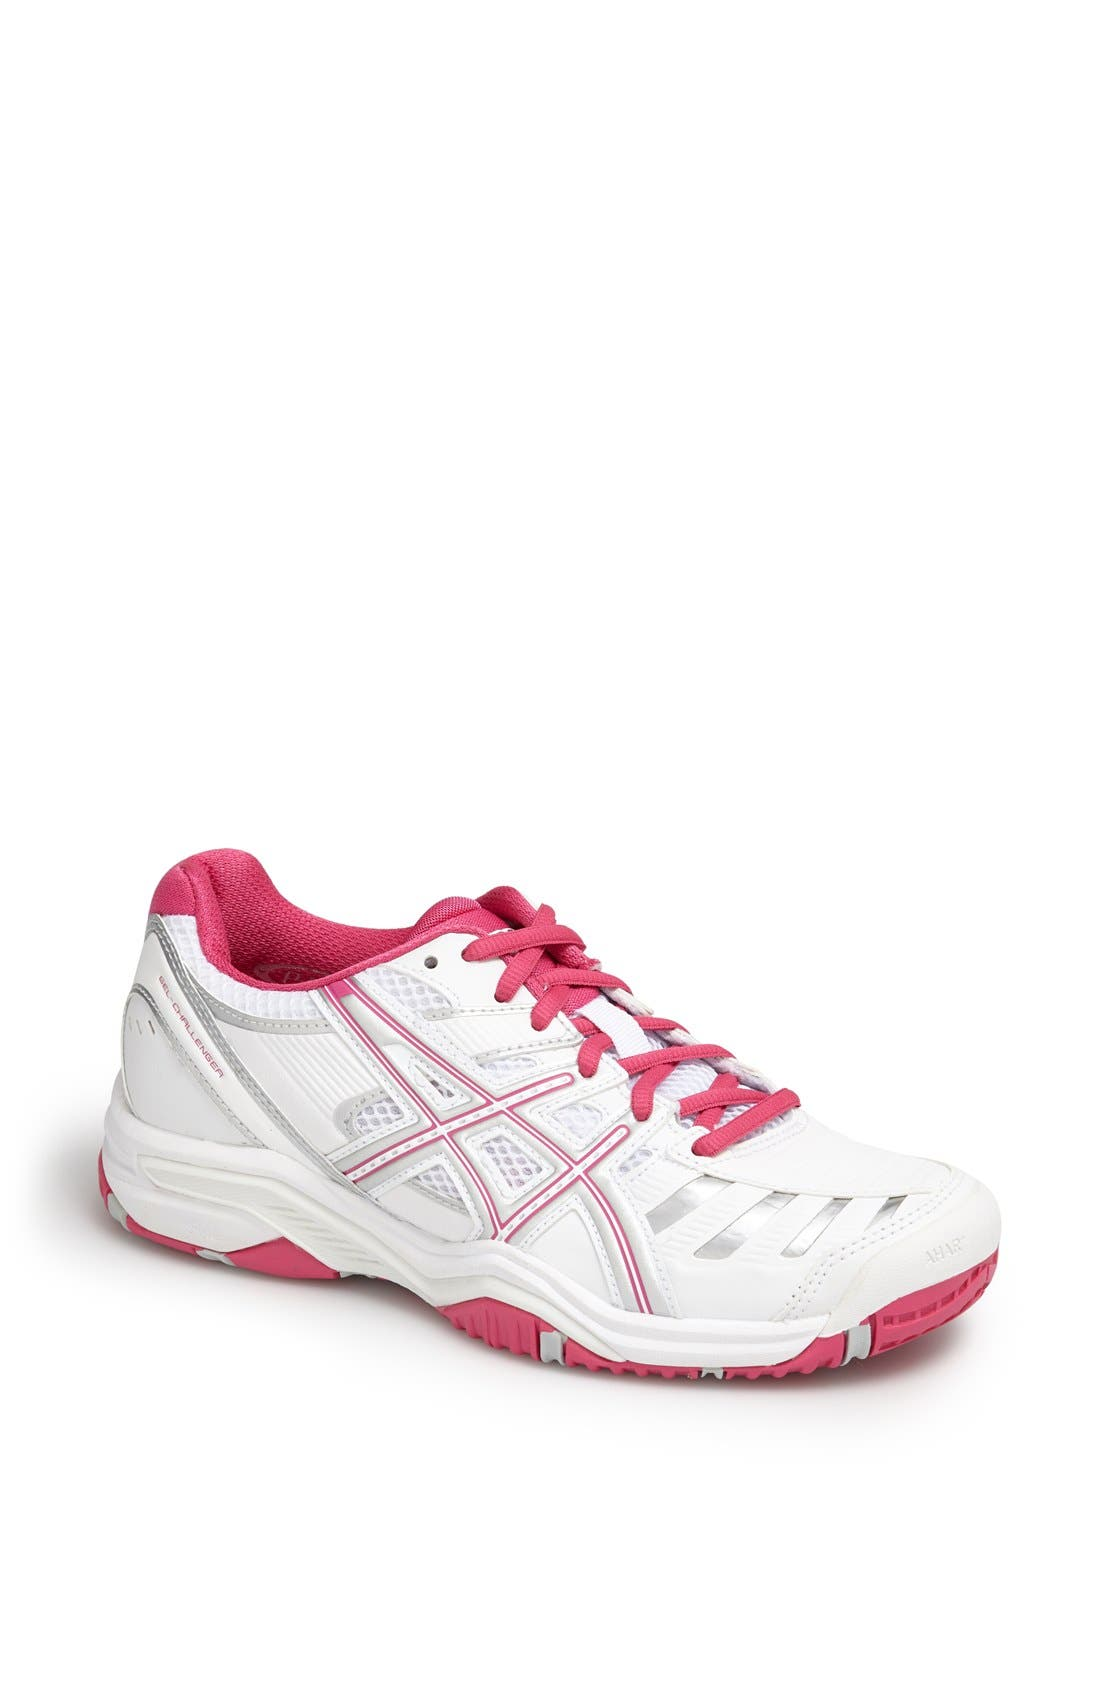 Main Image - ASICS® 'GEL-Challenger 9' Tennis Shoe (Women)